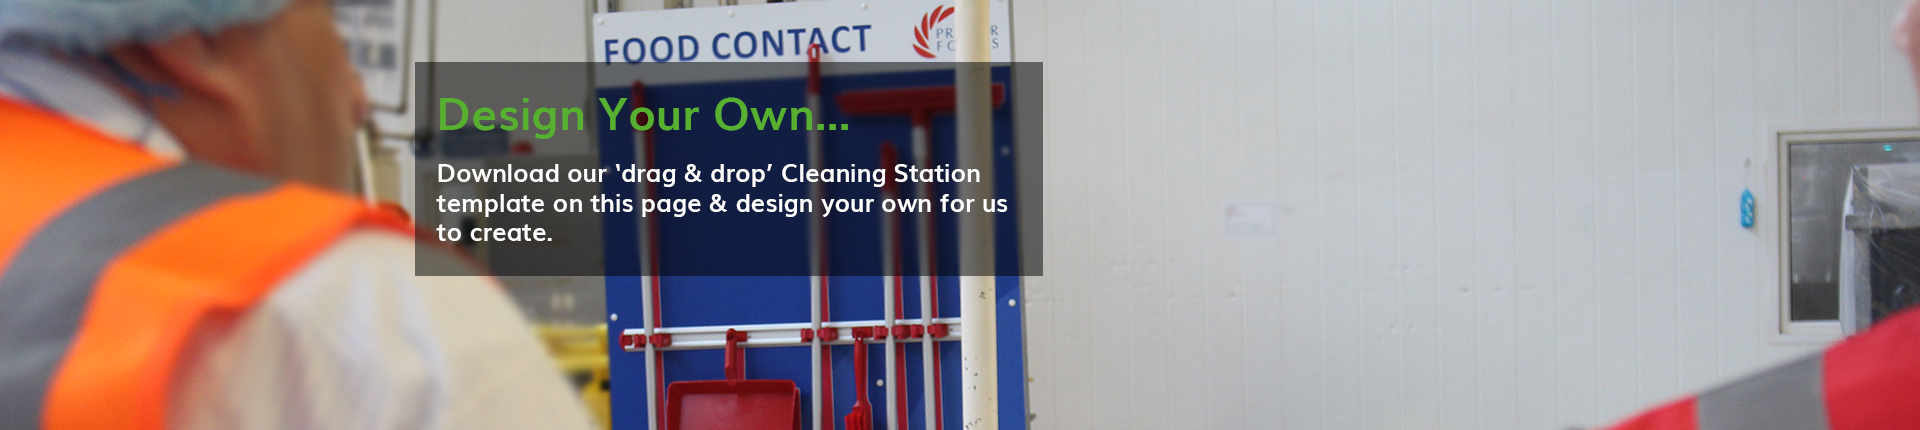 Cleaning Stations - Cleaning Station Template Banner